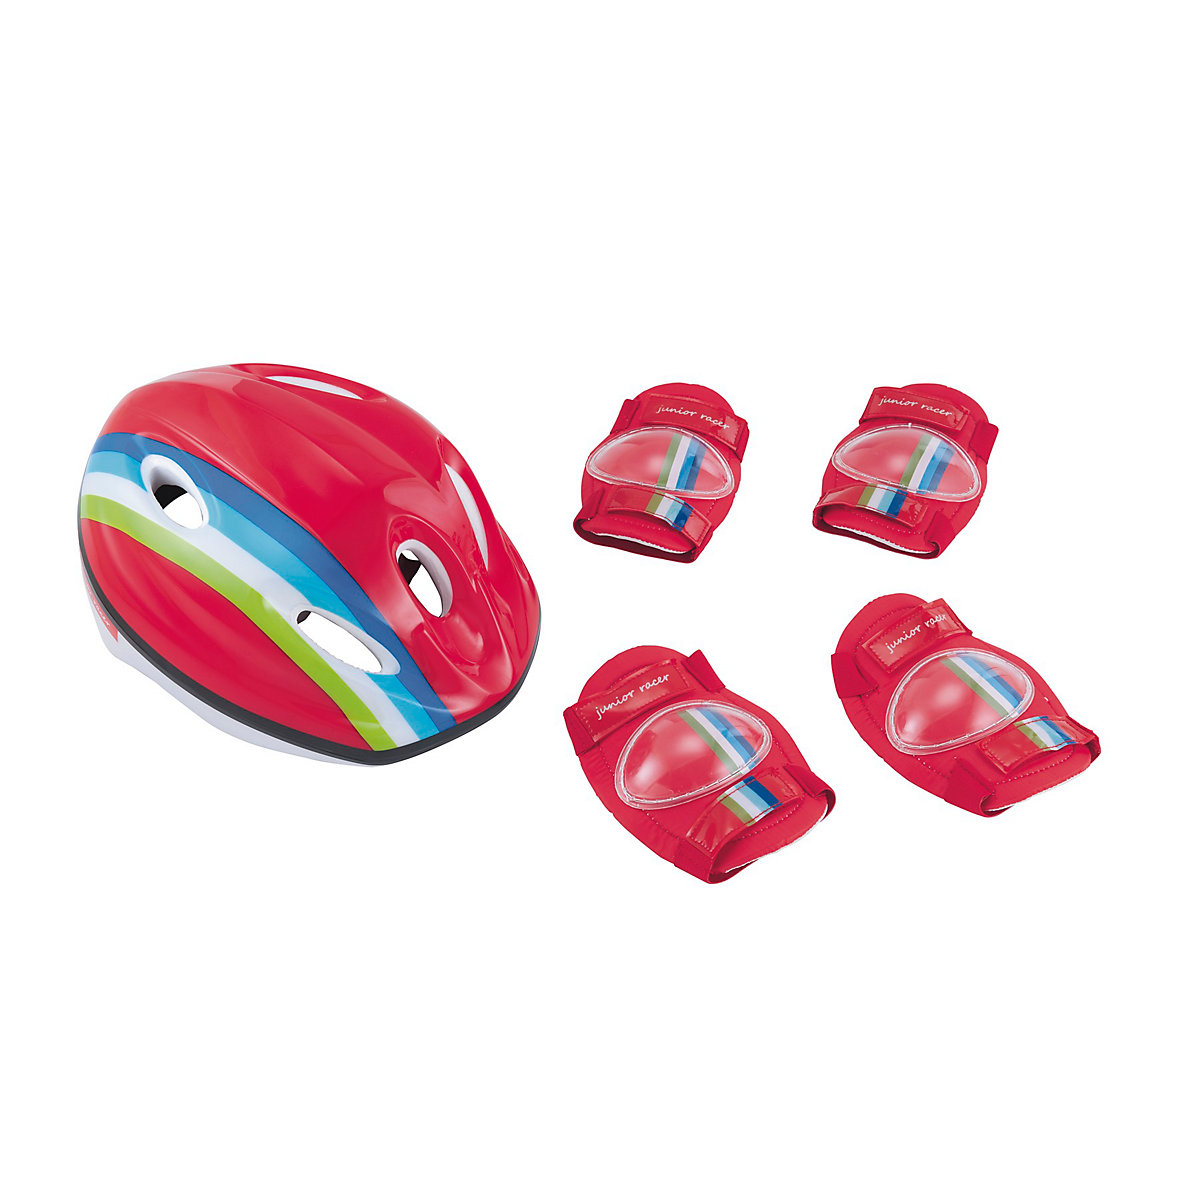 Striped Safety Set Toy From 3 Years